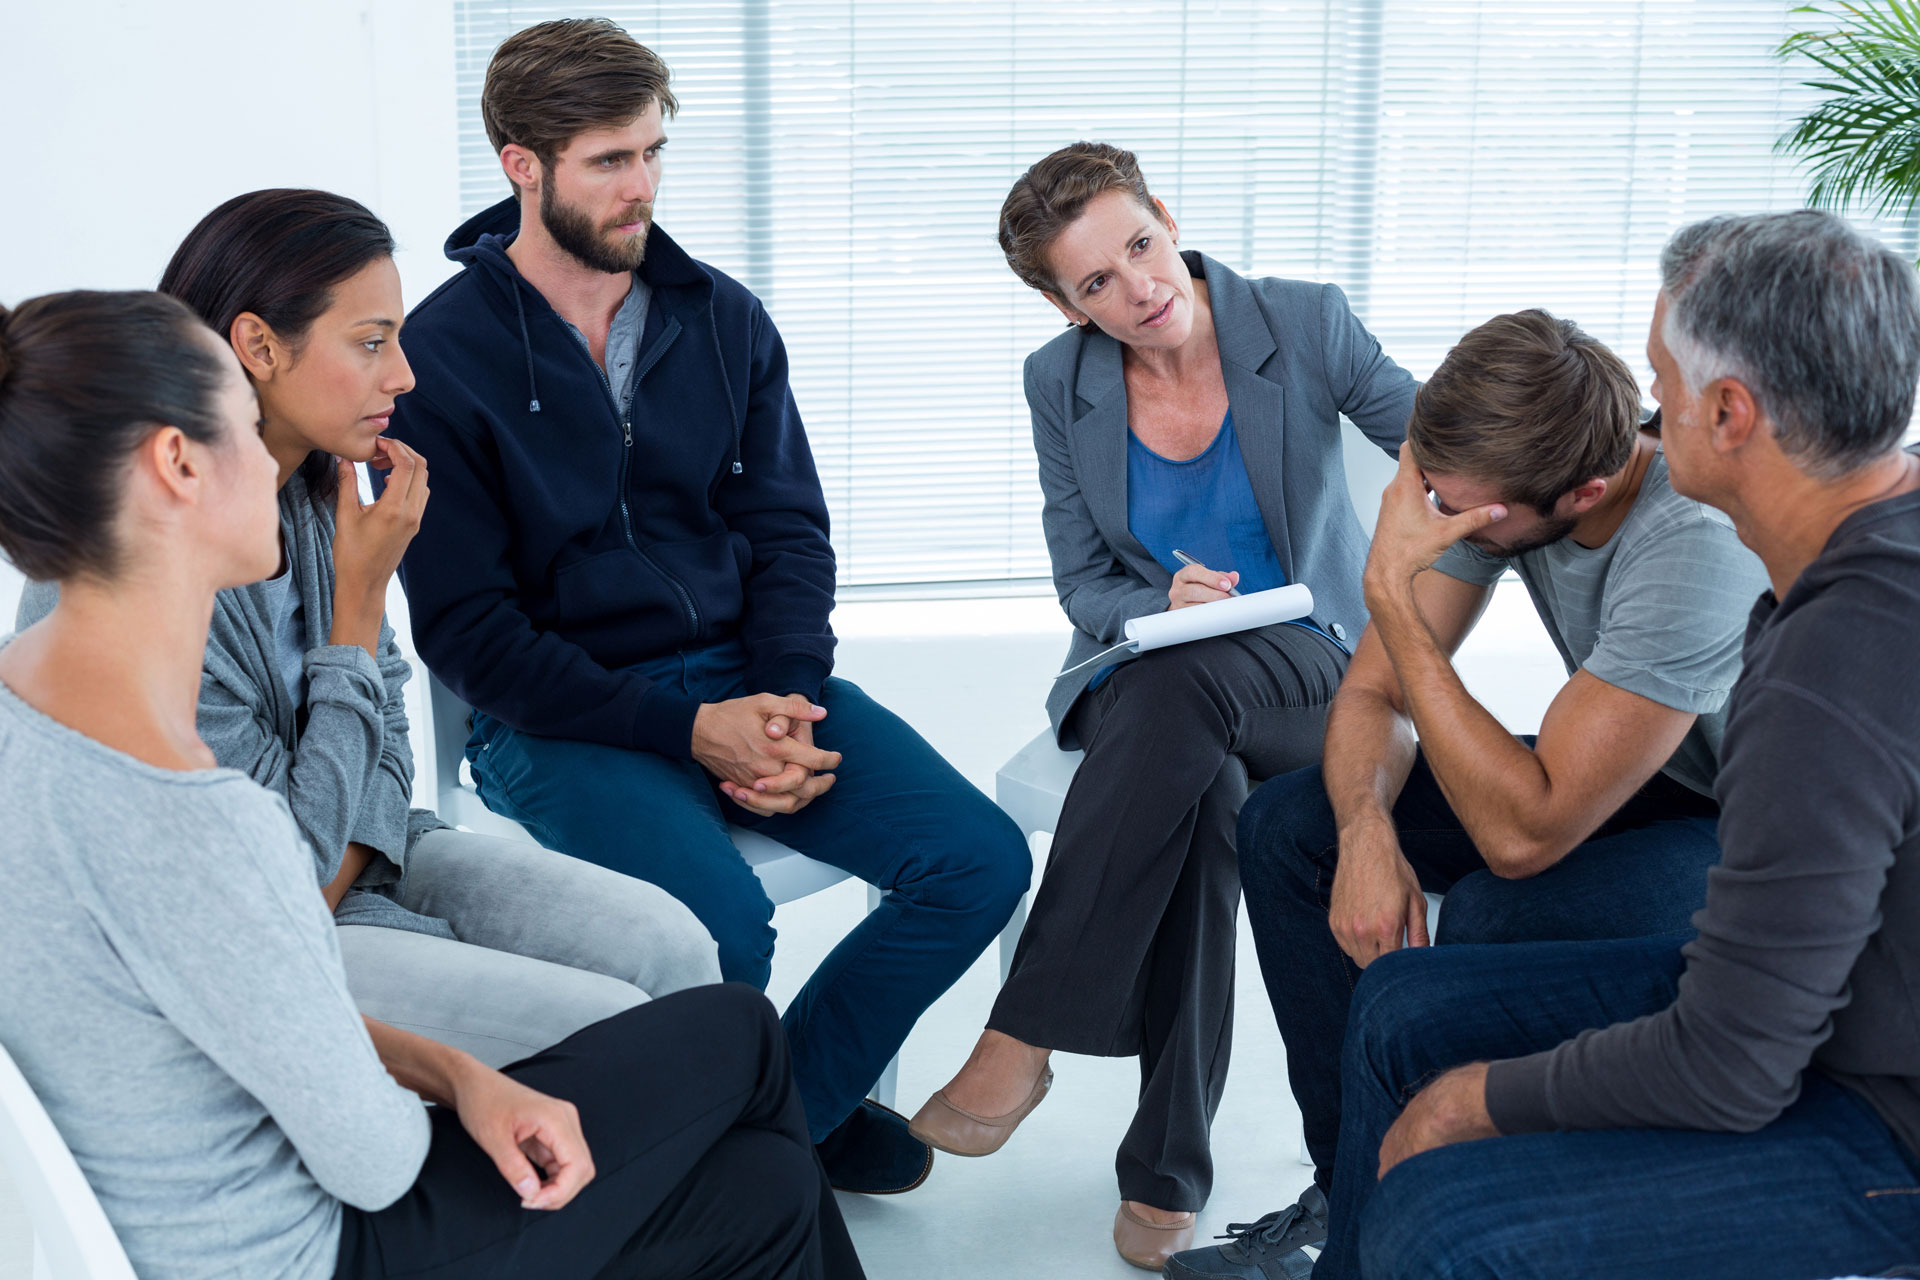 Drug Rehab Centers – Treatment Options and Amenities